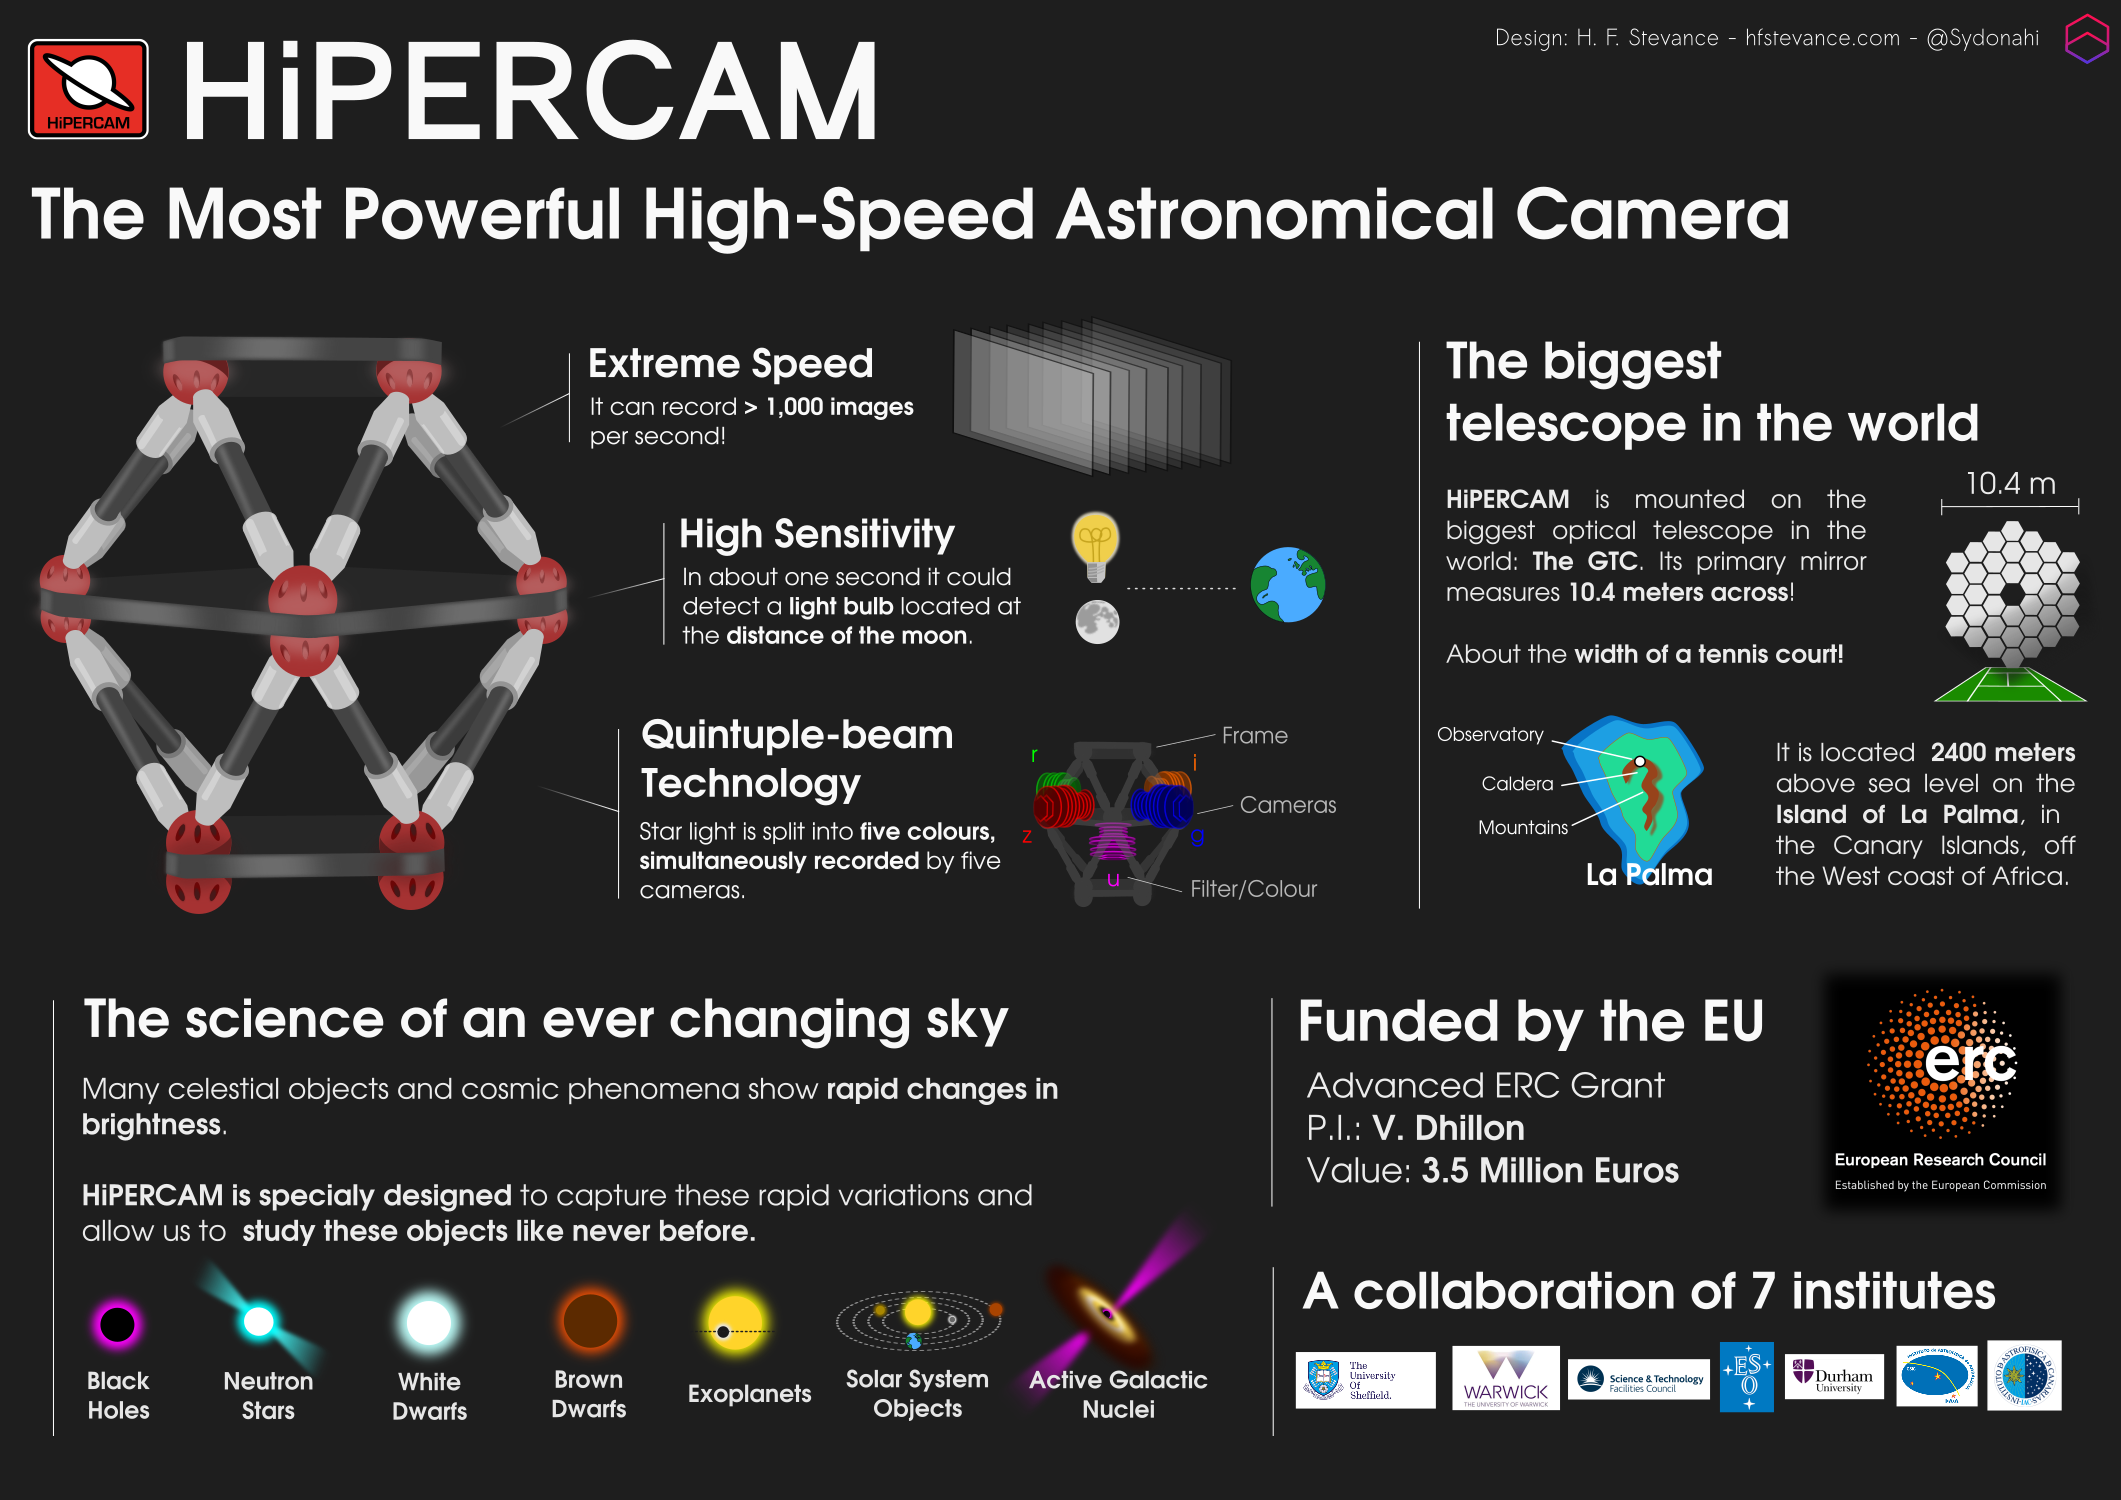 hipercam_infographic.png